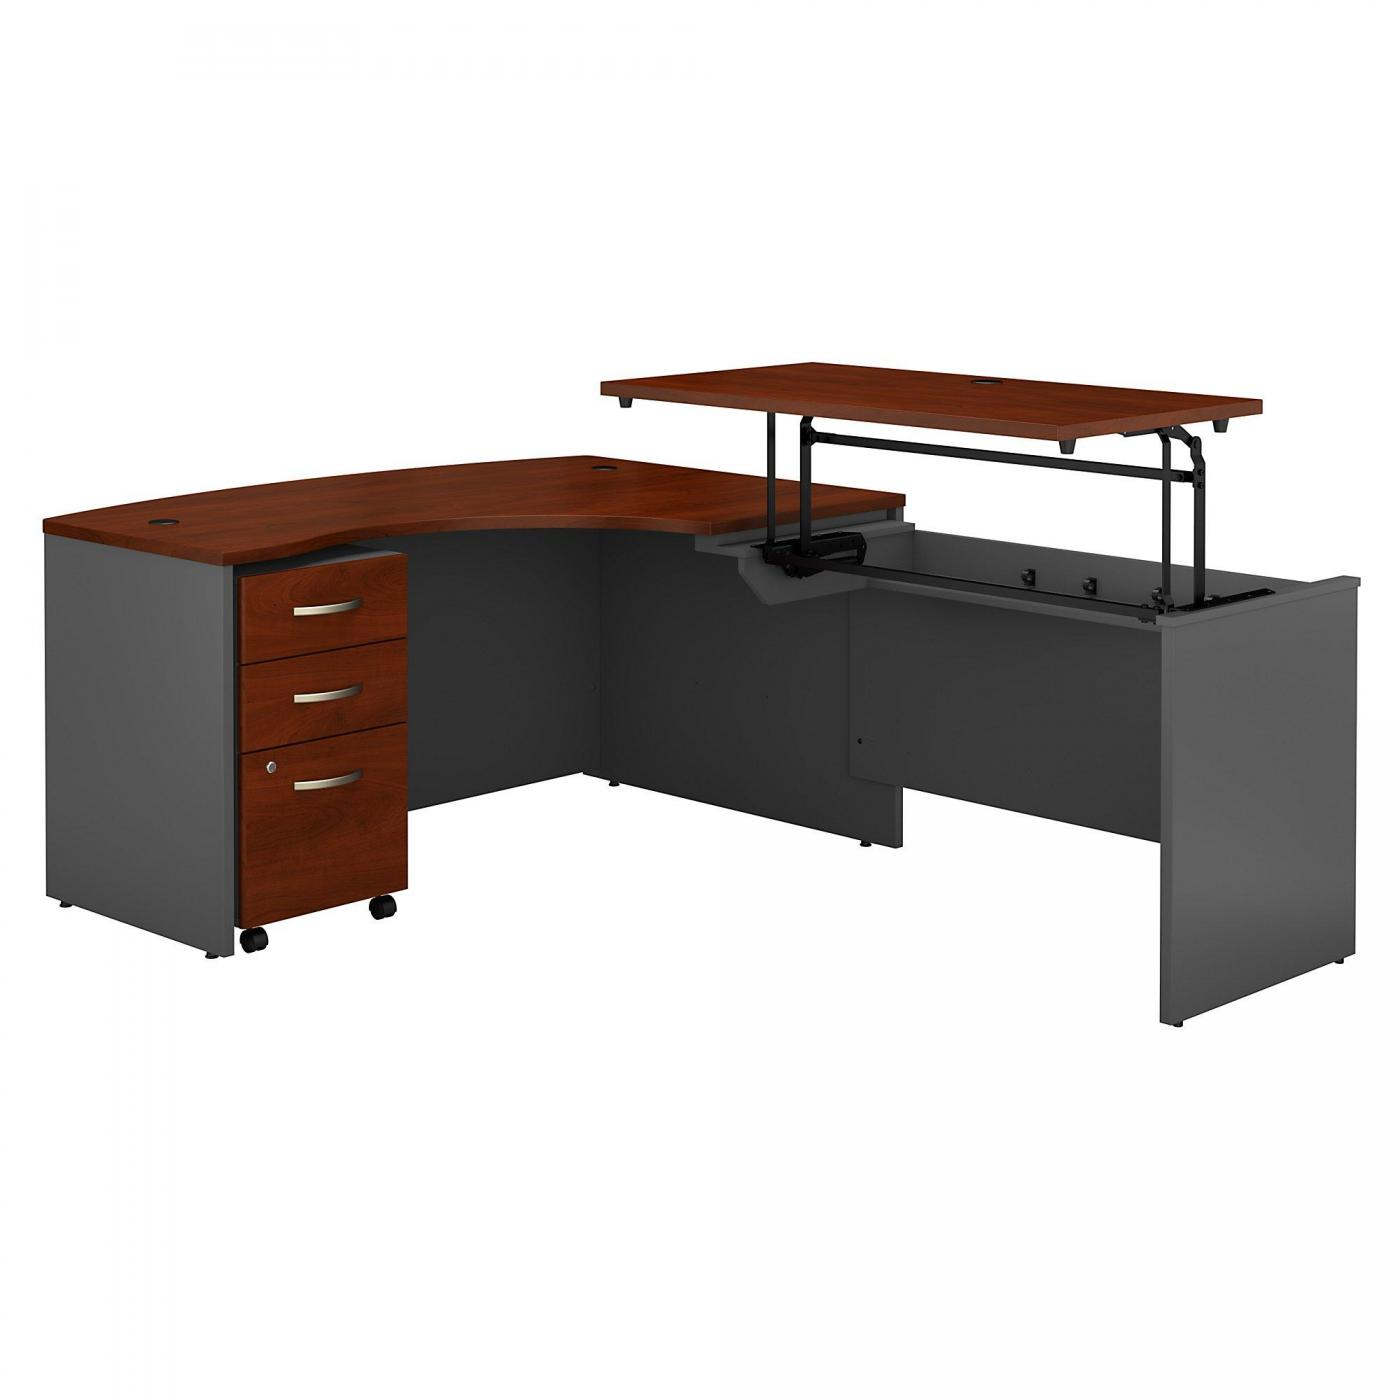 <font color=#c60><b>BUSH BUSINESS FURNITURE SERIES C 60W X 43D LEFT HAND 3 POSITION SIT TO STAND L SHAPED DESK WITH MOBILE FILE CABINET. FREE SHIPPING</font></b>